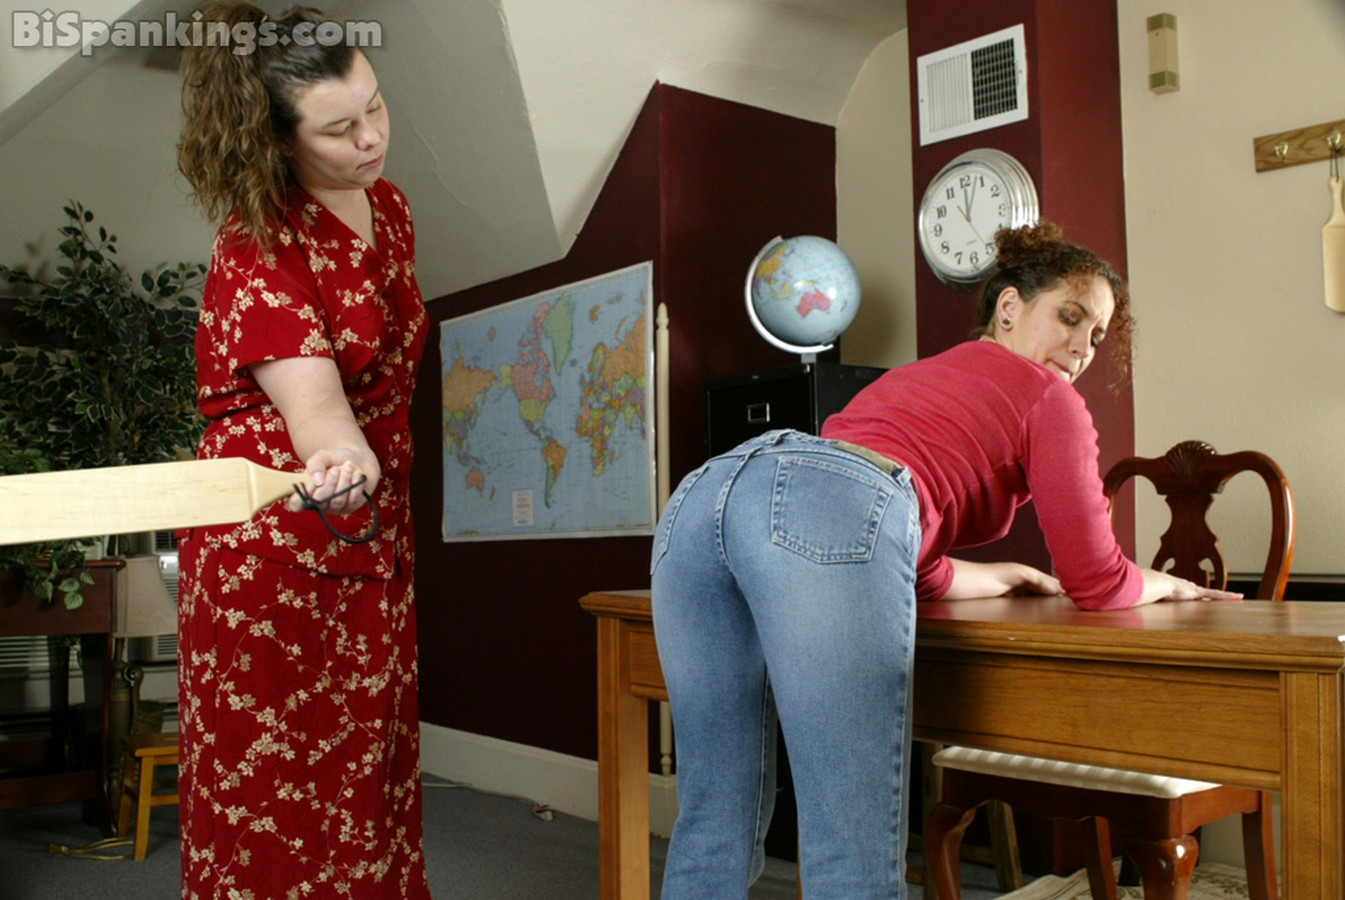 spanking models preview pictures 19